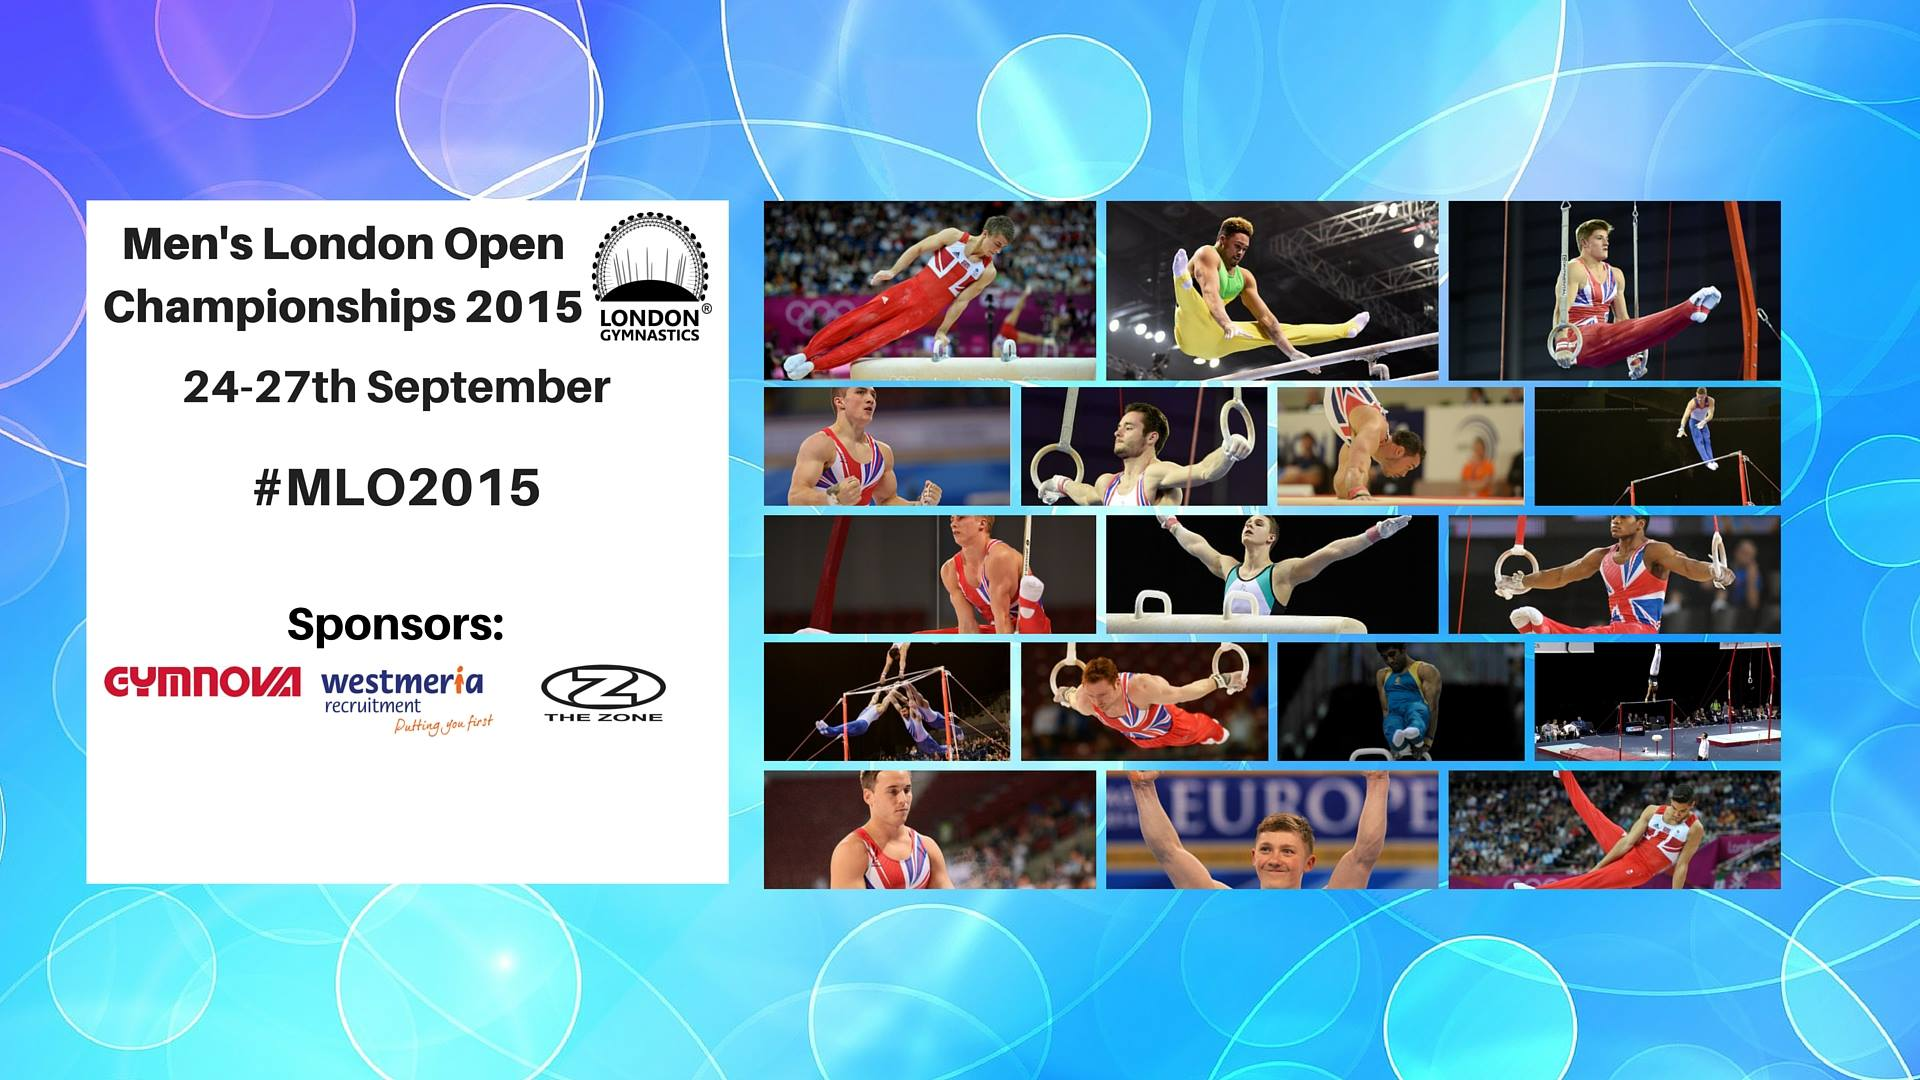 Men's London Open Championships 2015